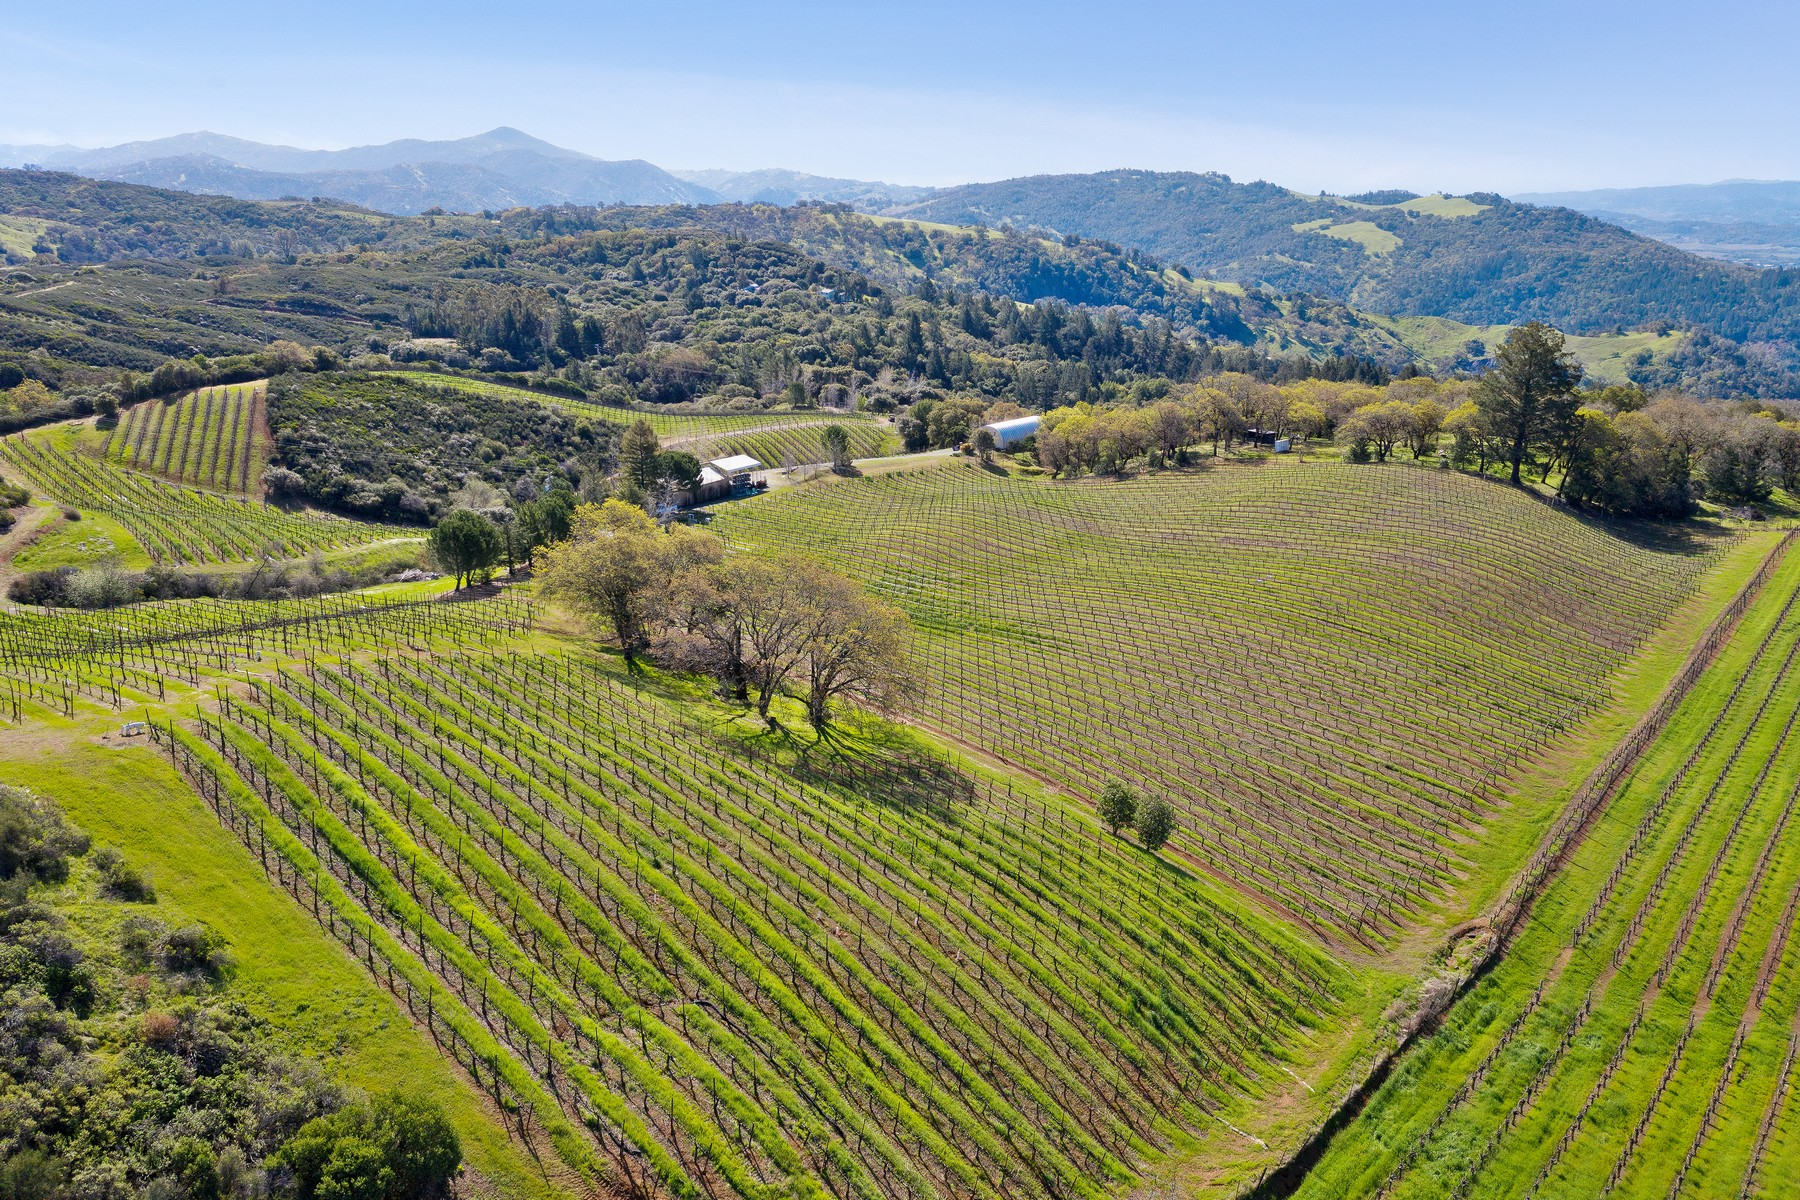 Vineyard Real Estate for Sale at Pine Mountain Majesty Cloverdale, California 95425 United States